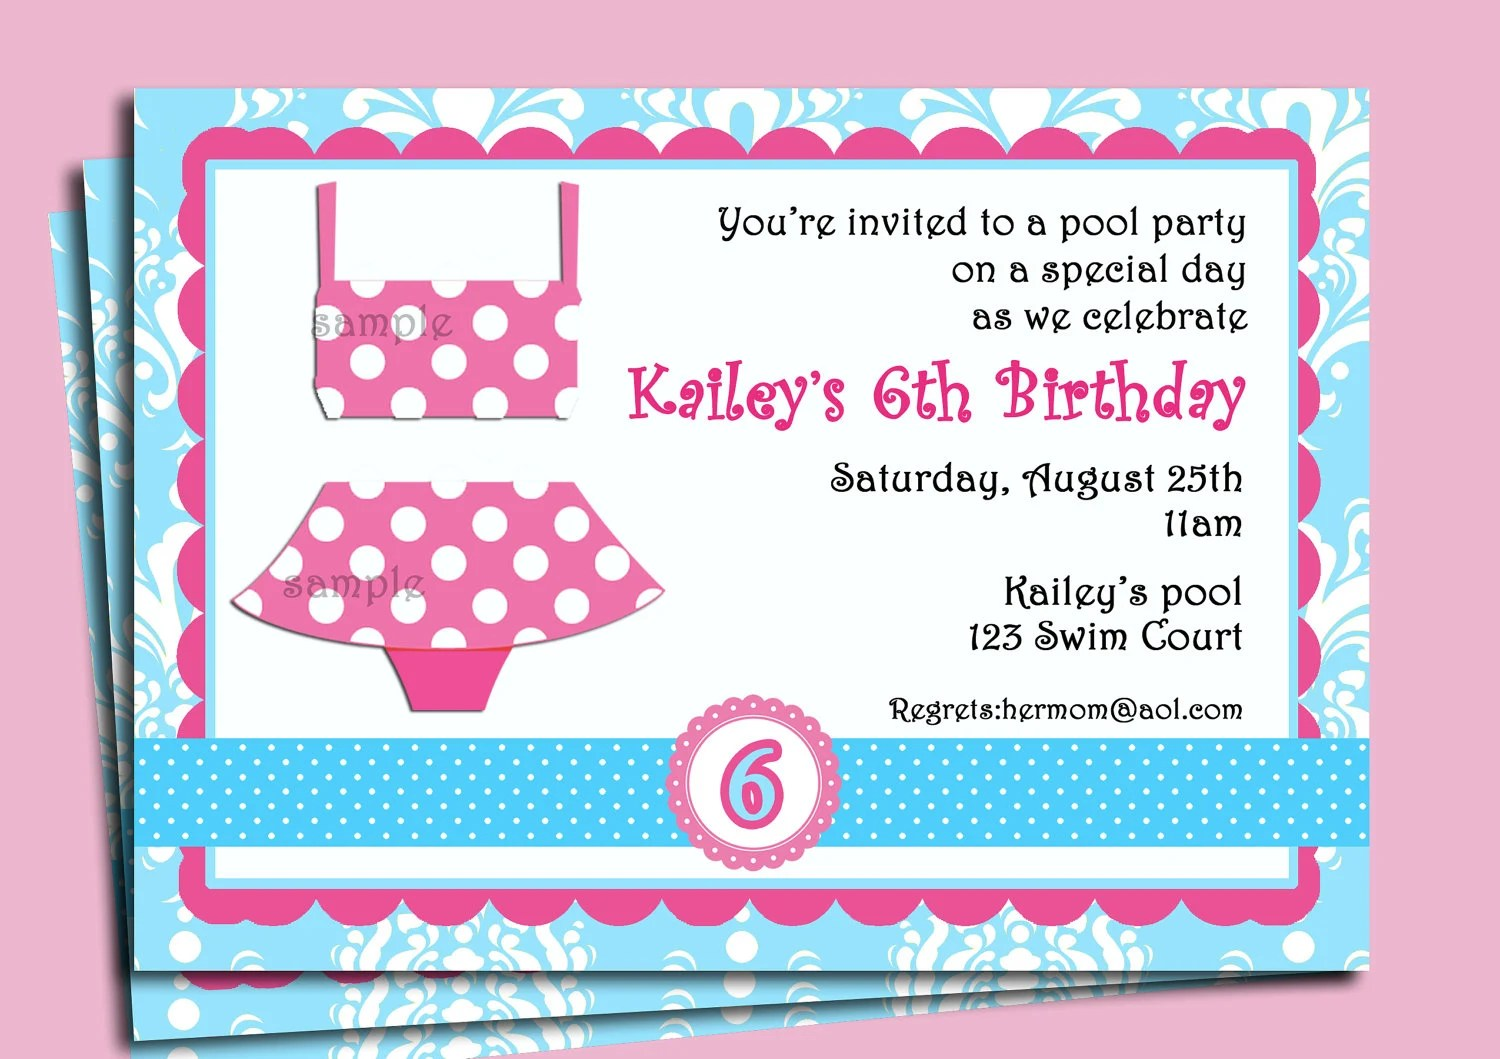 Pool Party Invitation ] | Pool Party Invitations, Pool Party ...